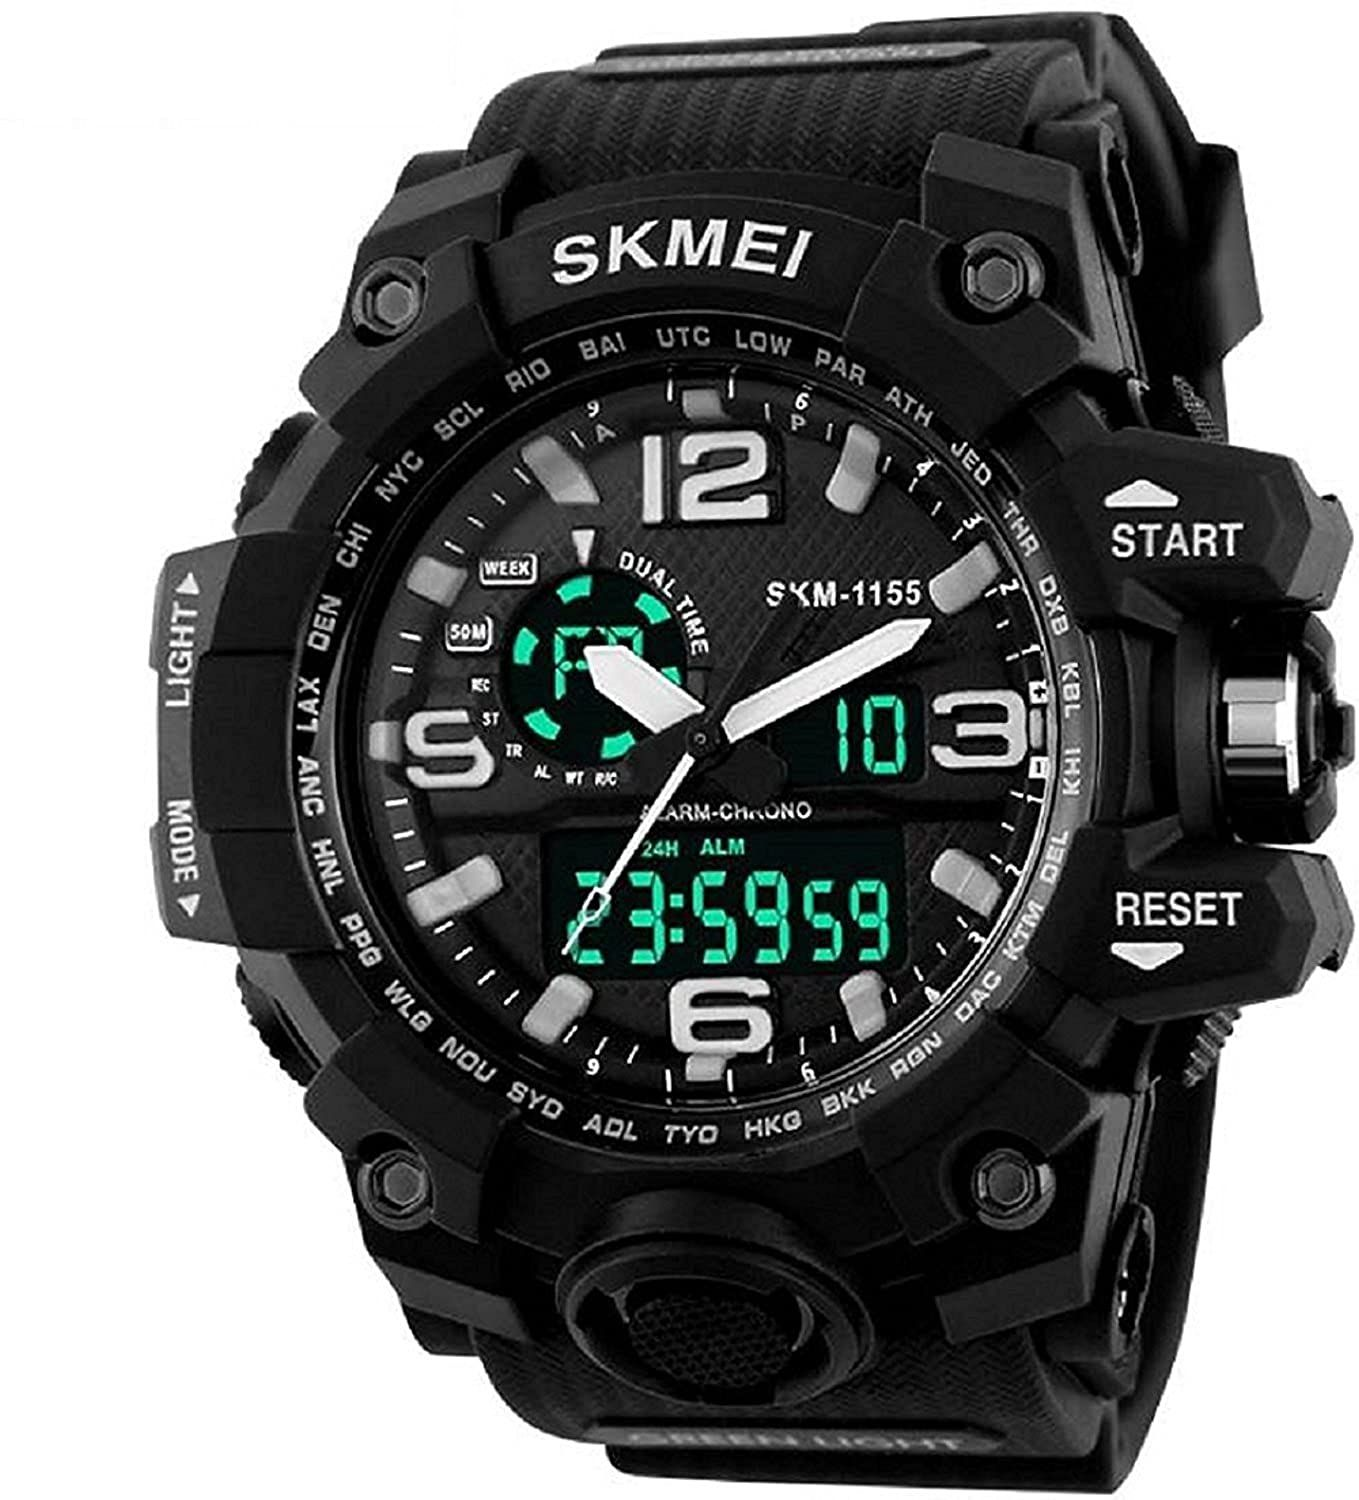 Skmei Analog Digital Quartz Men S Watch With Silicone Strap In 2020 Military Watches Best Watches For Men Stylish Watches Men